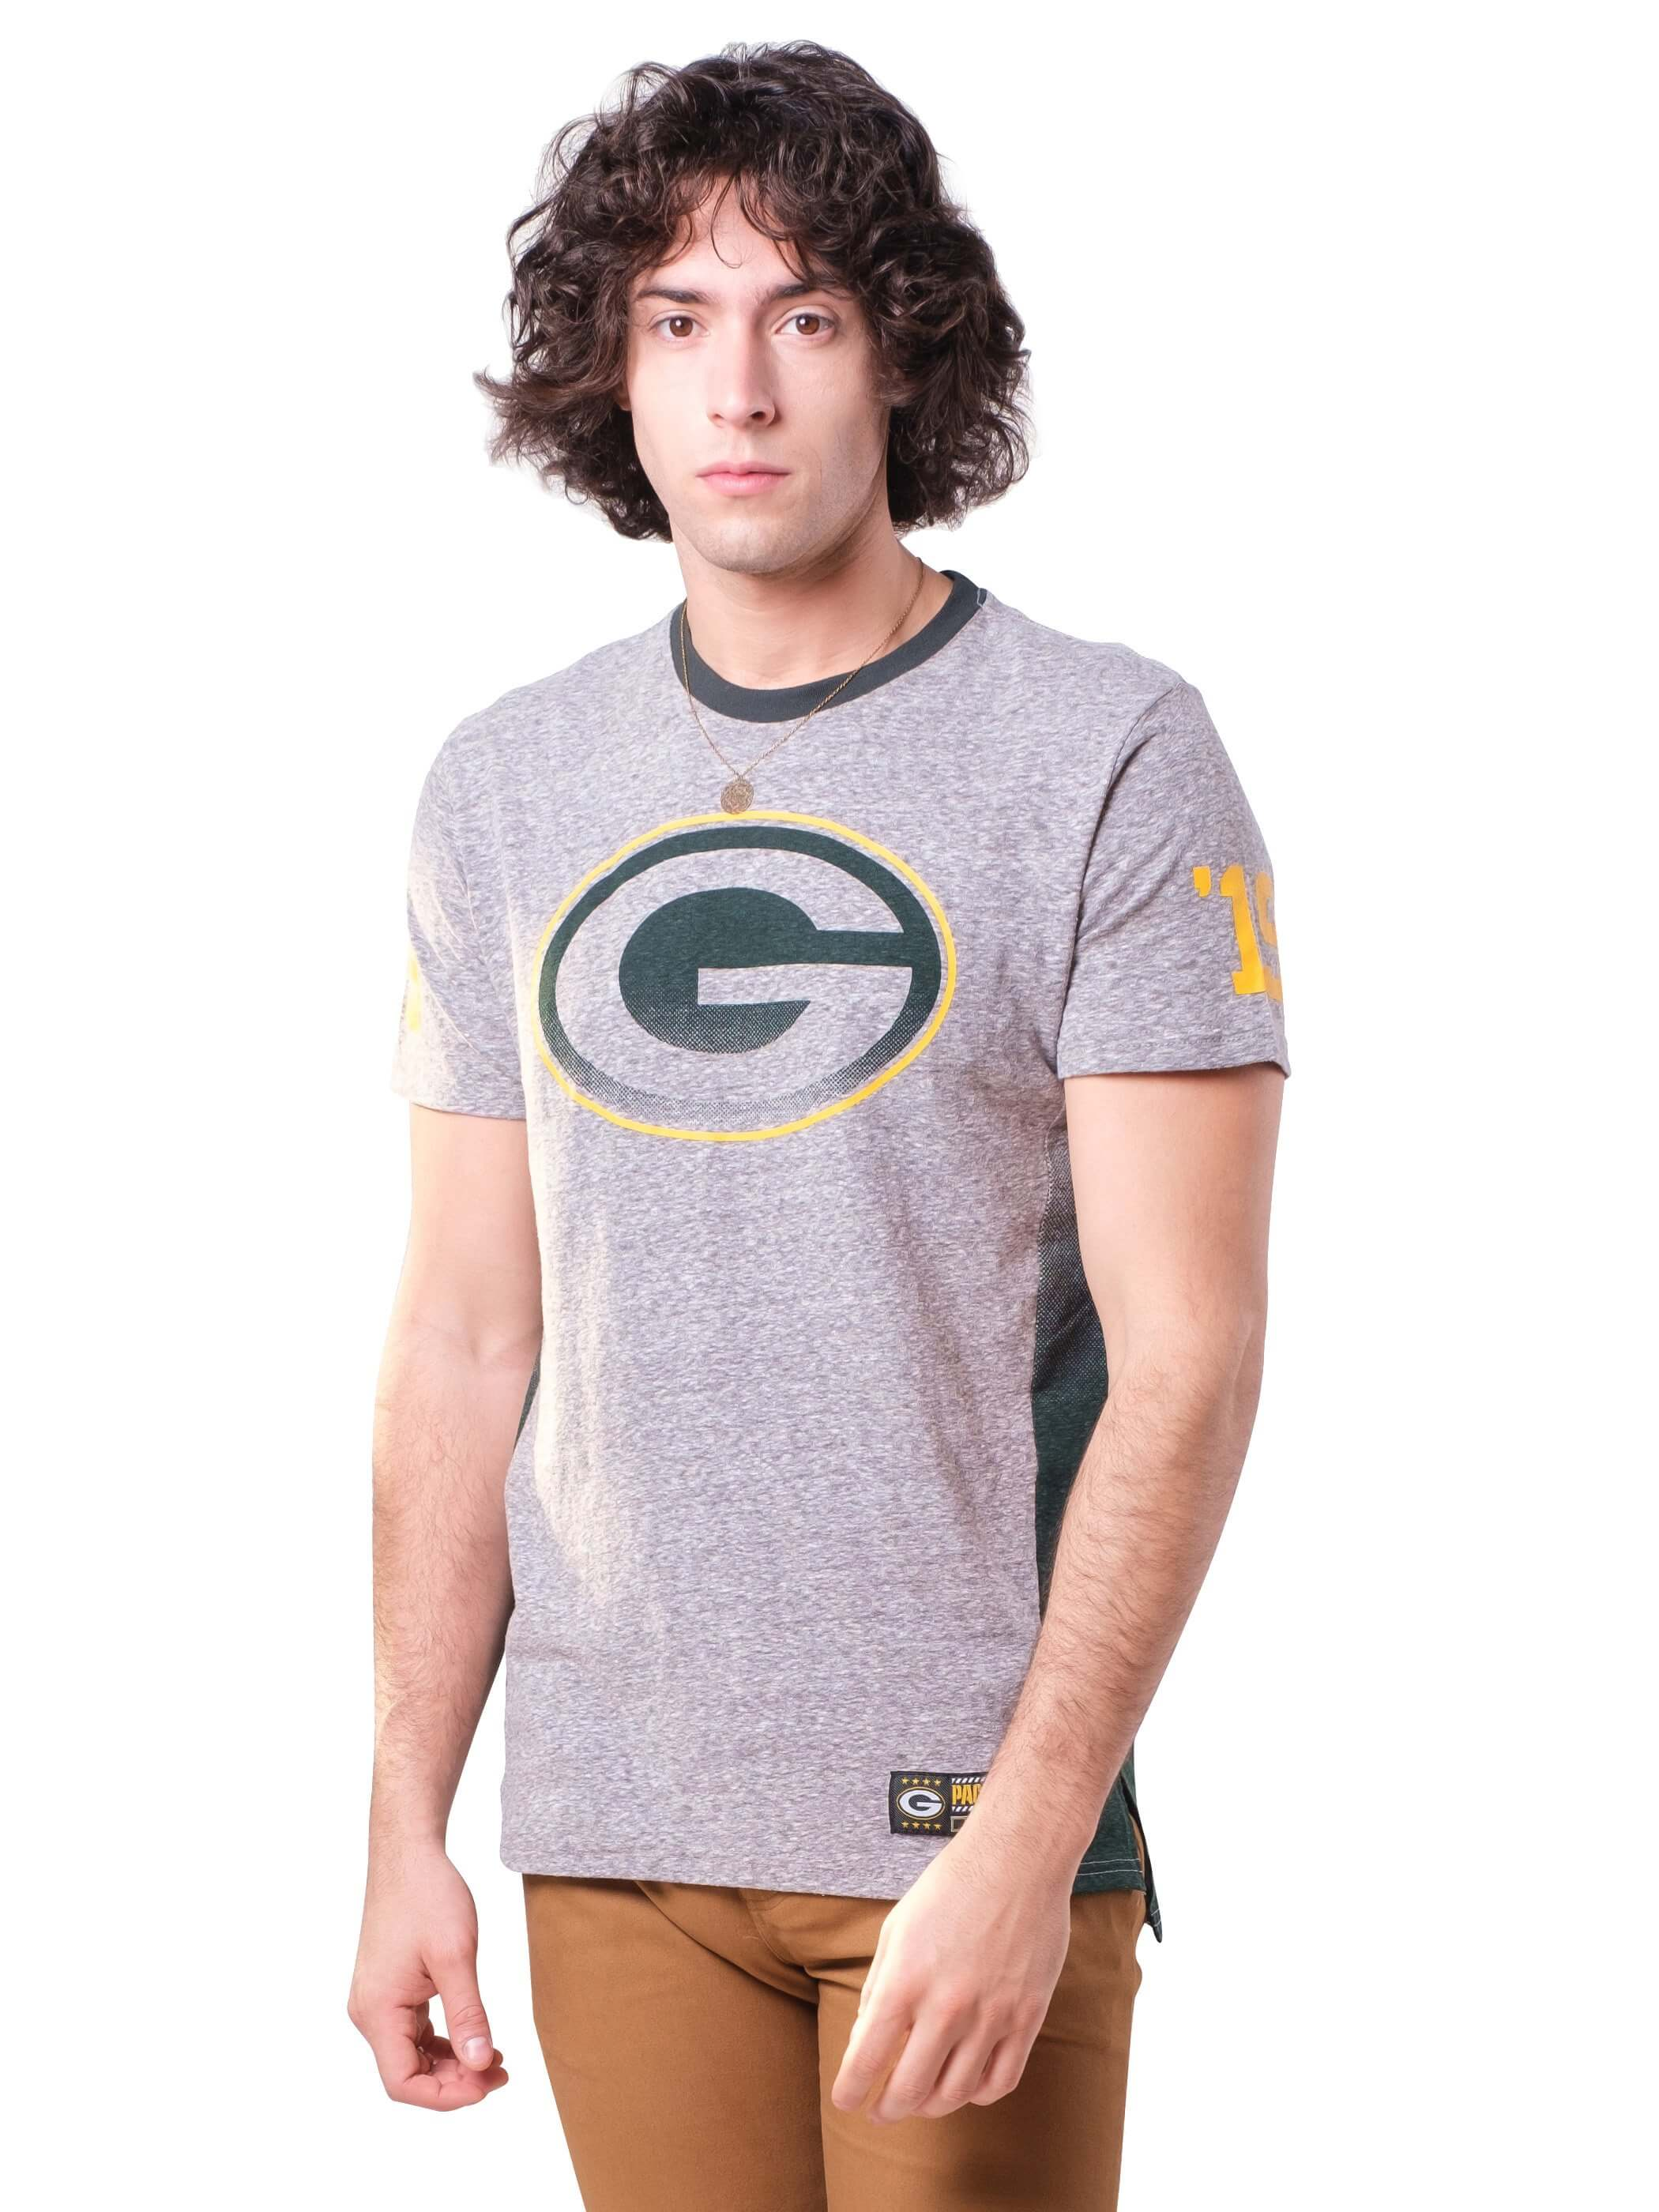 NFL Green Bay Packers Men's Vintage Ringer Short Sleeve Tee|Green Bay Packers